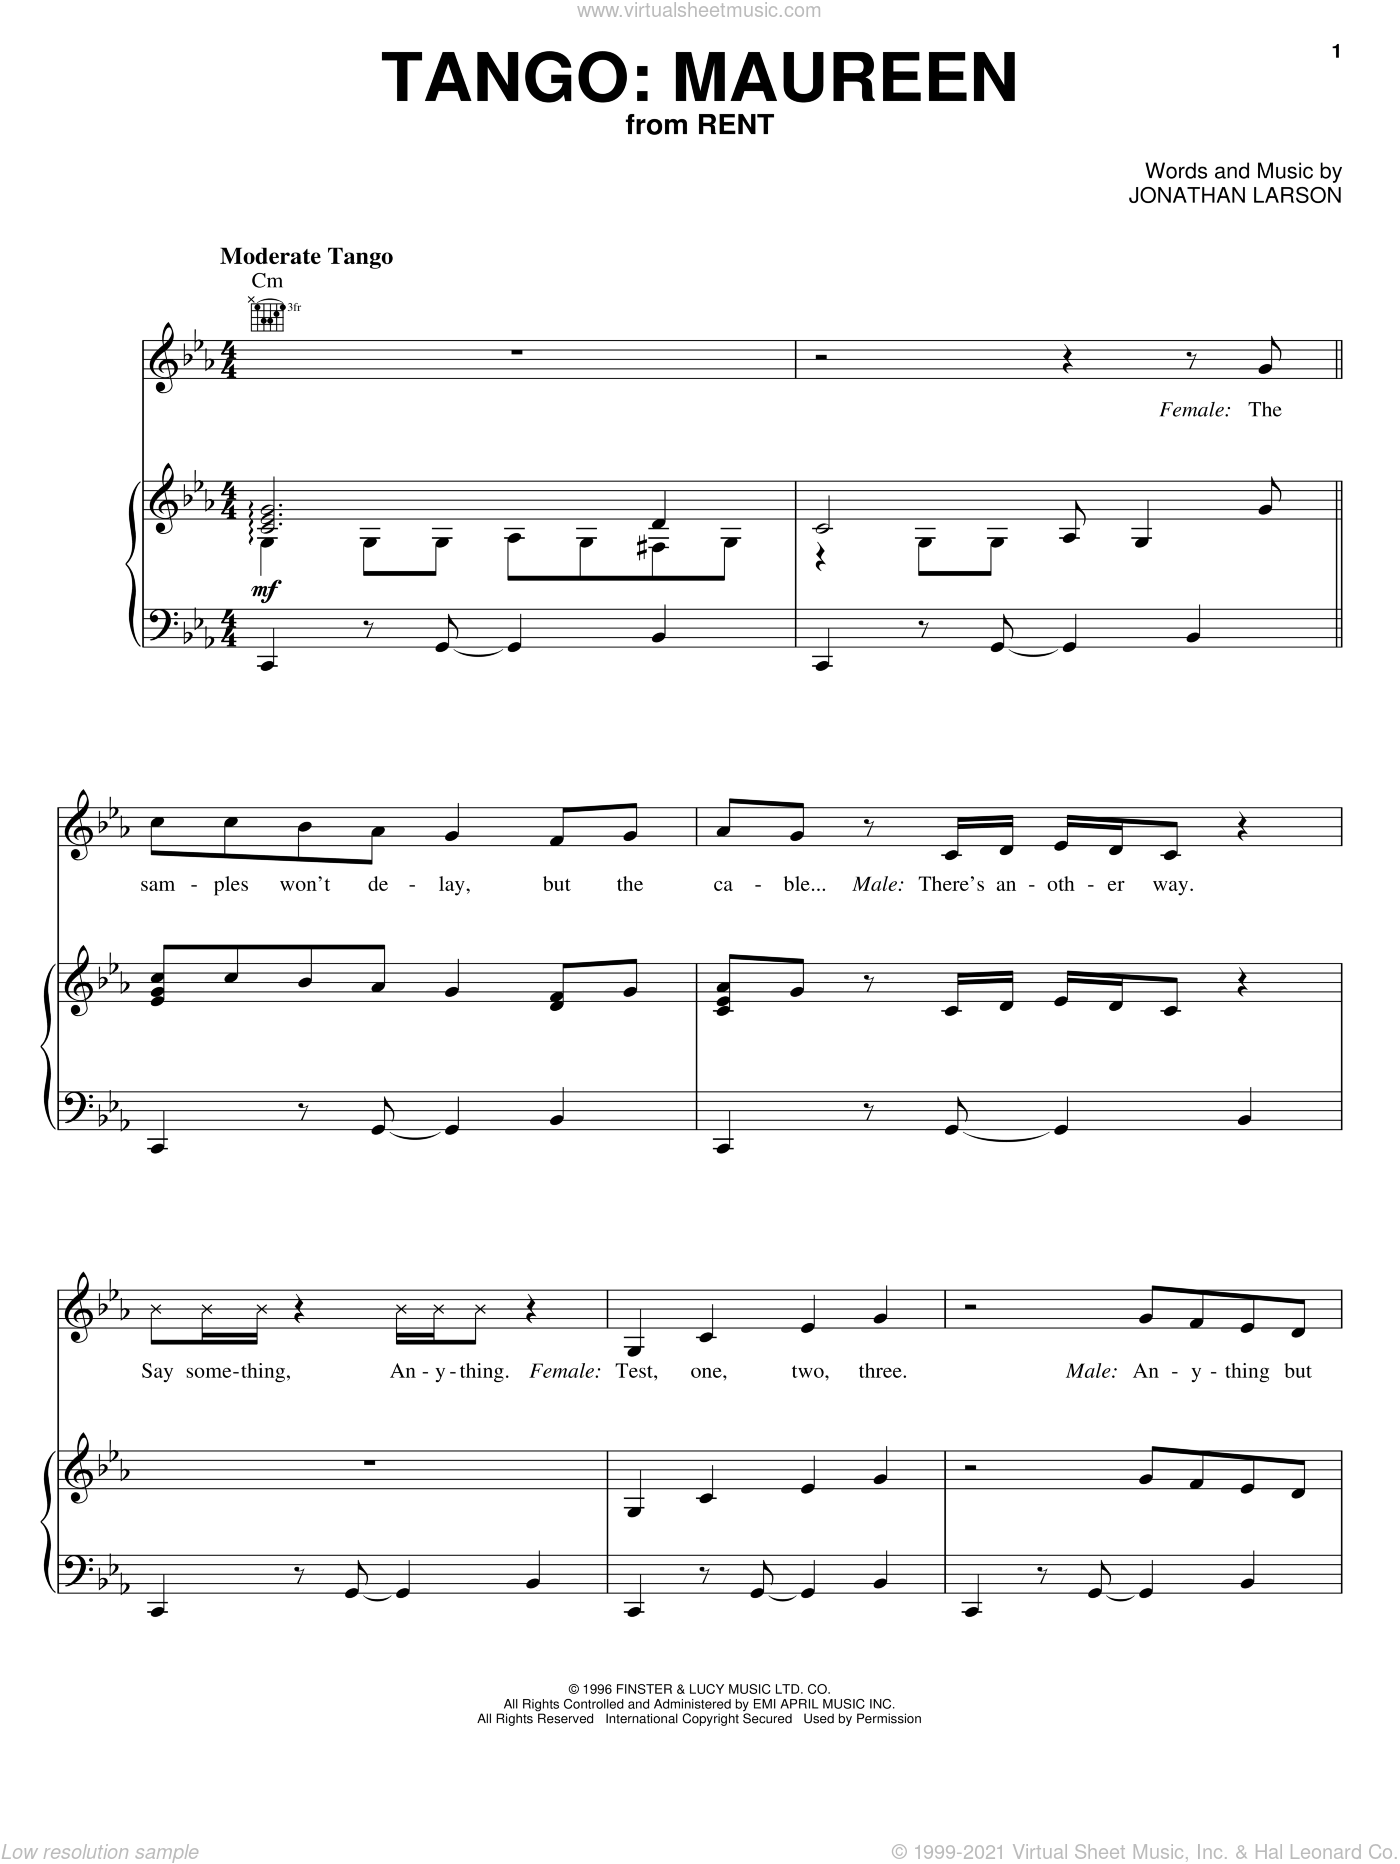 Tango: Maureen sheet music for voice, piano or guitar by Jonathan Larson. Score Image Preview.